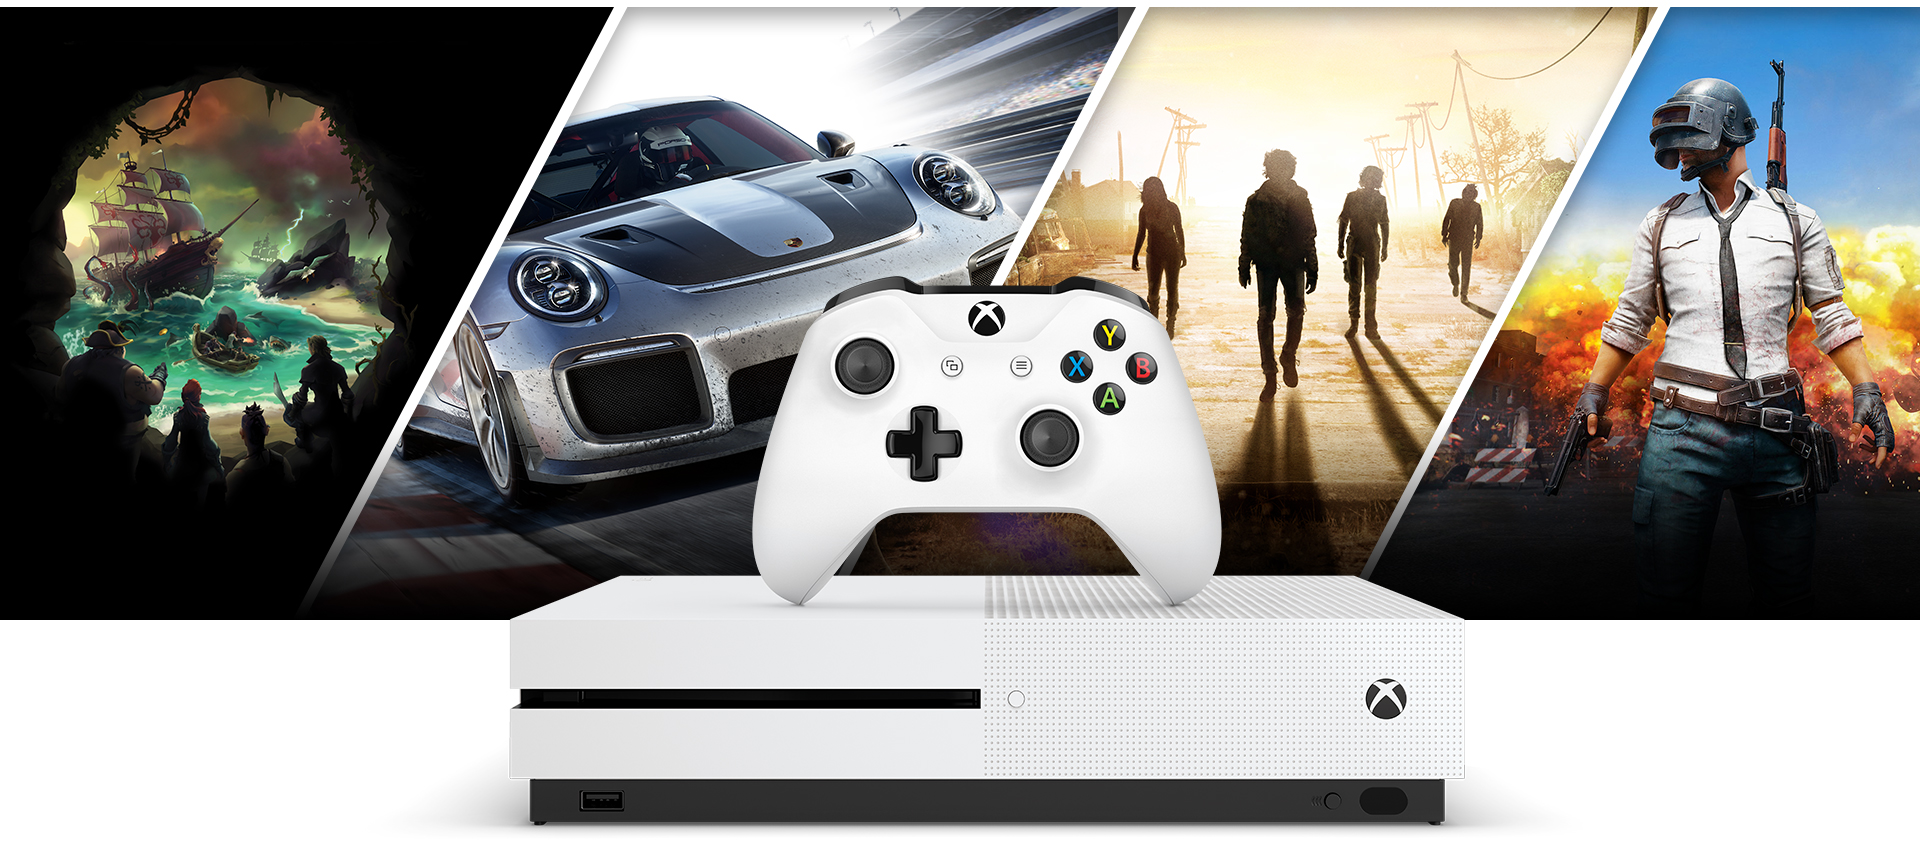 Grafiki z gier Sea of Thieves, Forza 7, State of Decay 3 i Player Unknown's Battlegrounds wokół konsoli Xbox One S i białego kontrolera Xbox